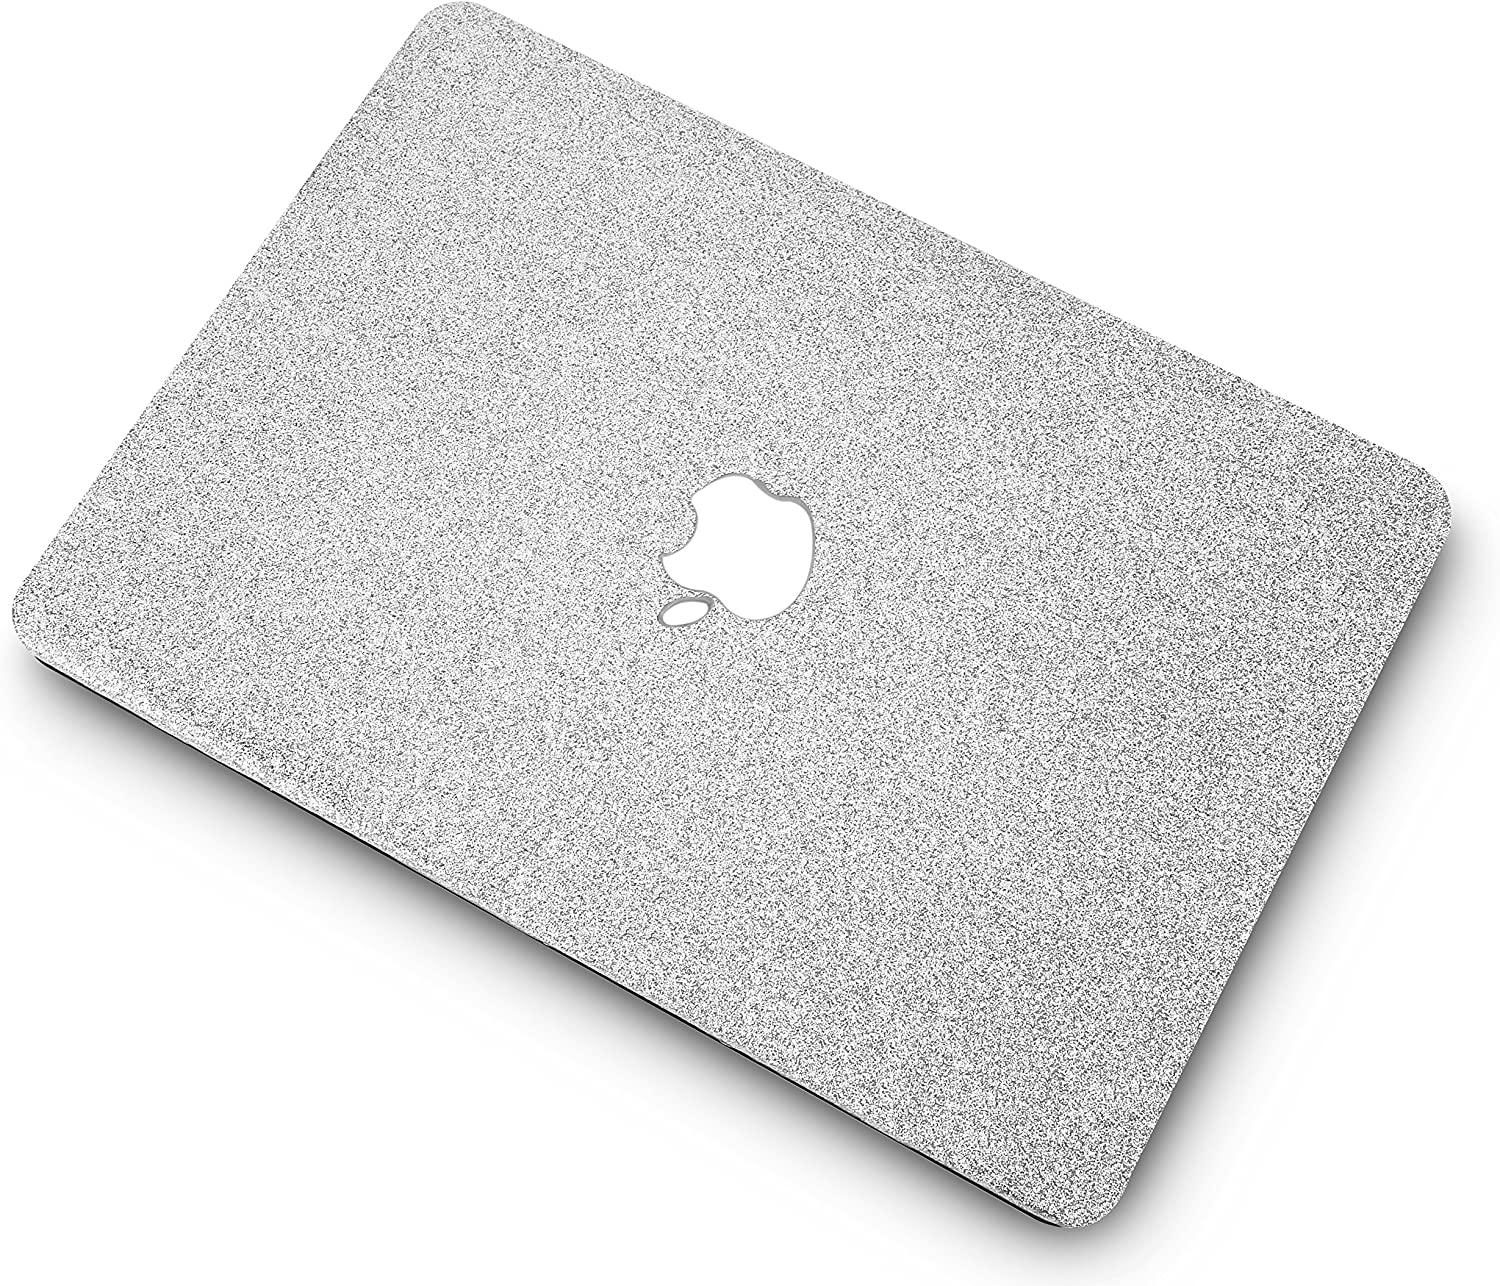 Silver Sparkling Screen Protector A1502 // A1425 2015 KECC MacBook Pro Retina 13 Inch Case w//UK Keyboard Cover Plastic Hard Shell Sleeve